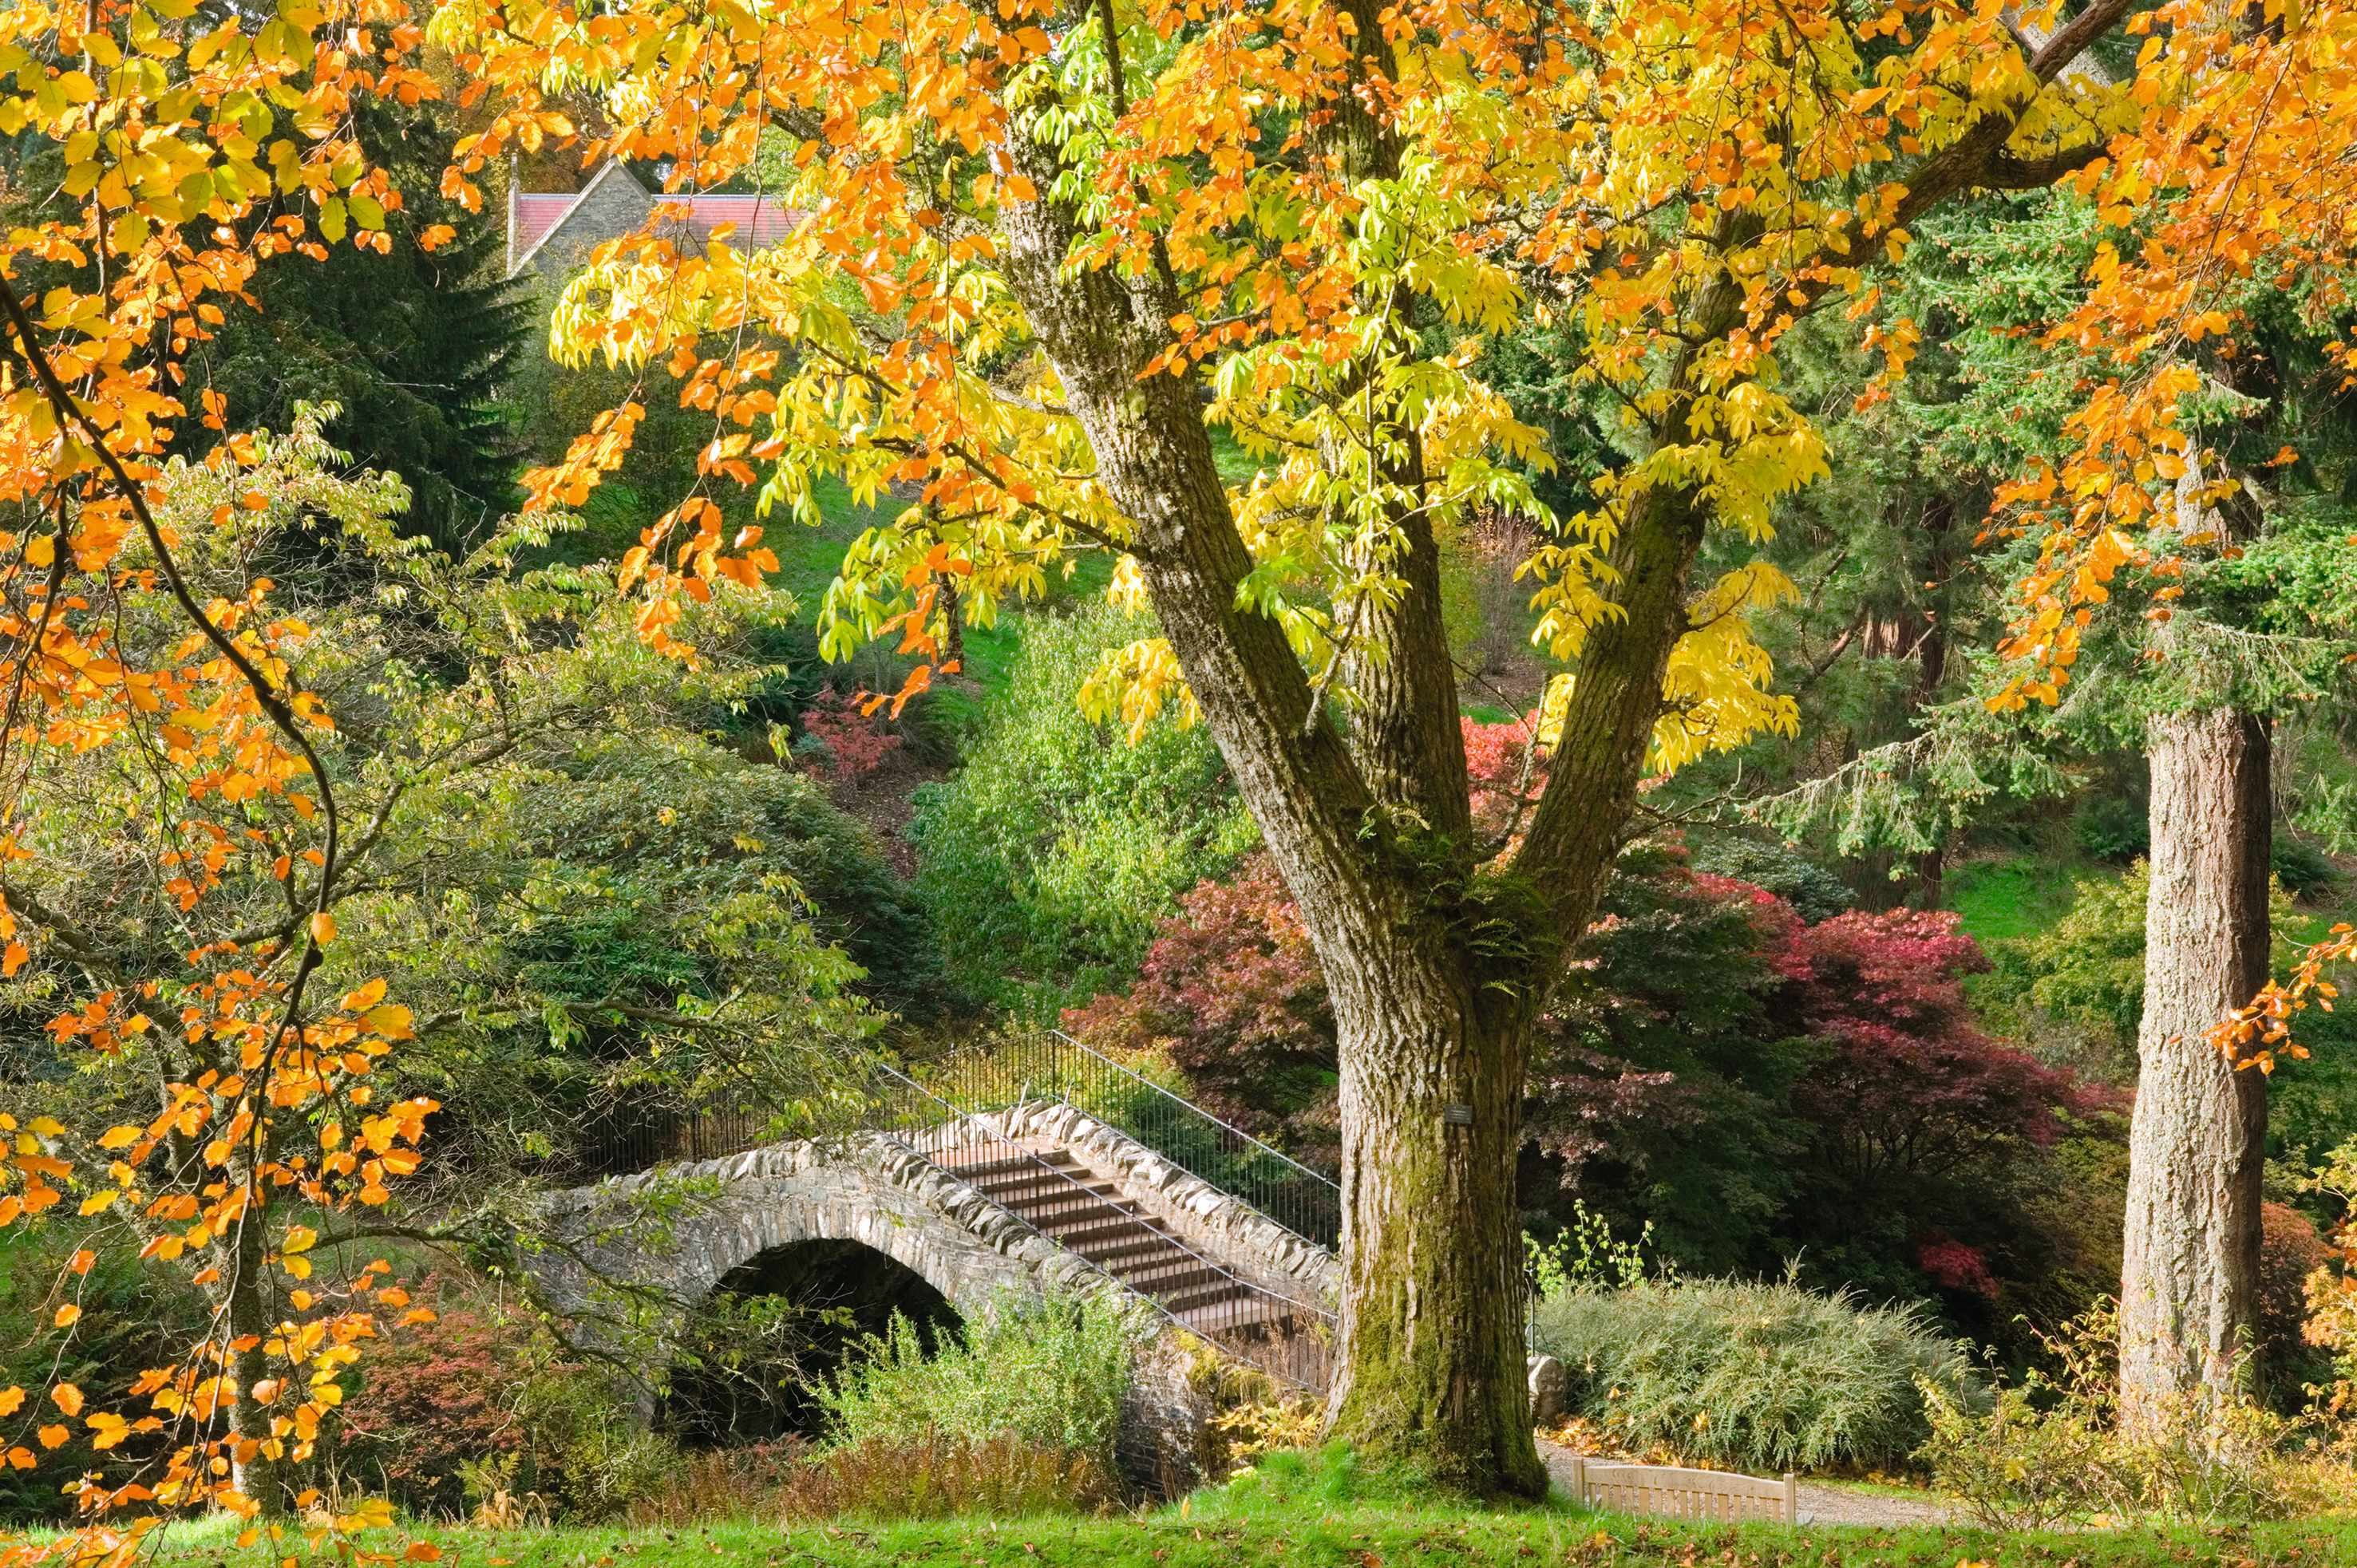 The Swiss Bridge in Scrape Glen at Dawyck Botanic Garden, Stobo, Scottish Borders, Scotland